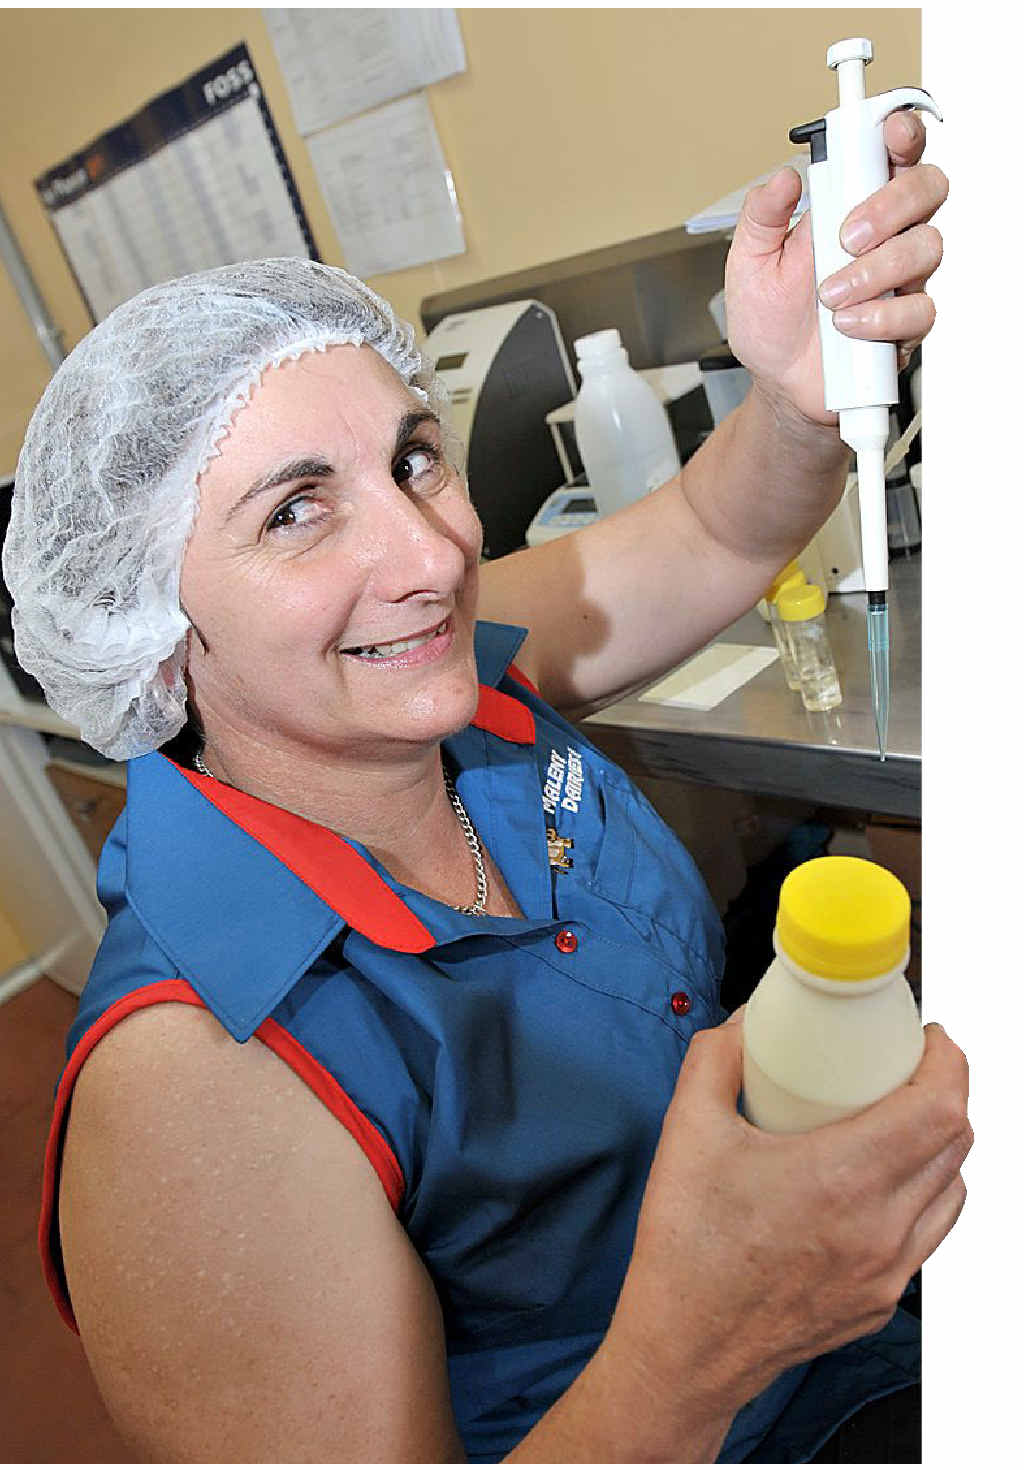 Elaine Perriman, of Maleny Dairies, tests milk to ensure its safety after a bout of contamination.